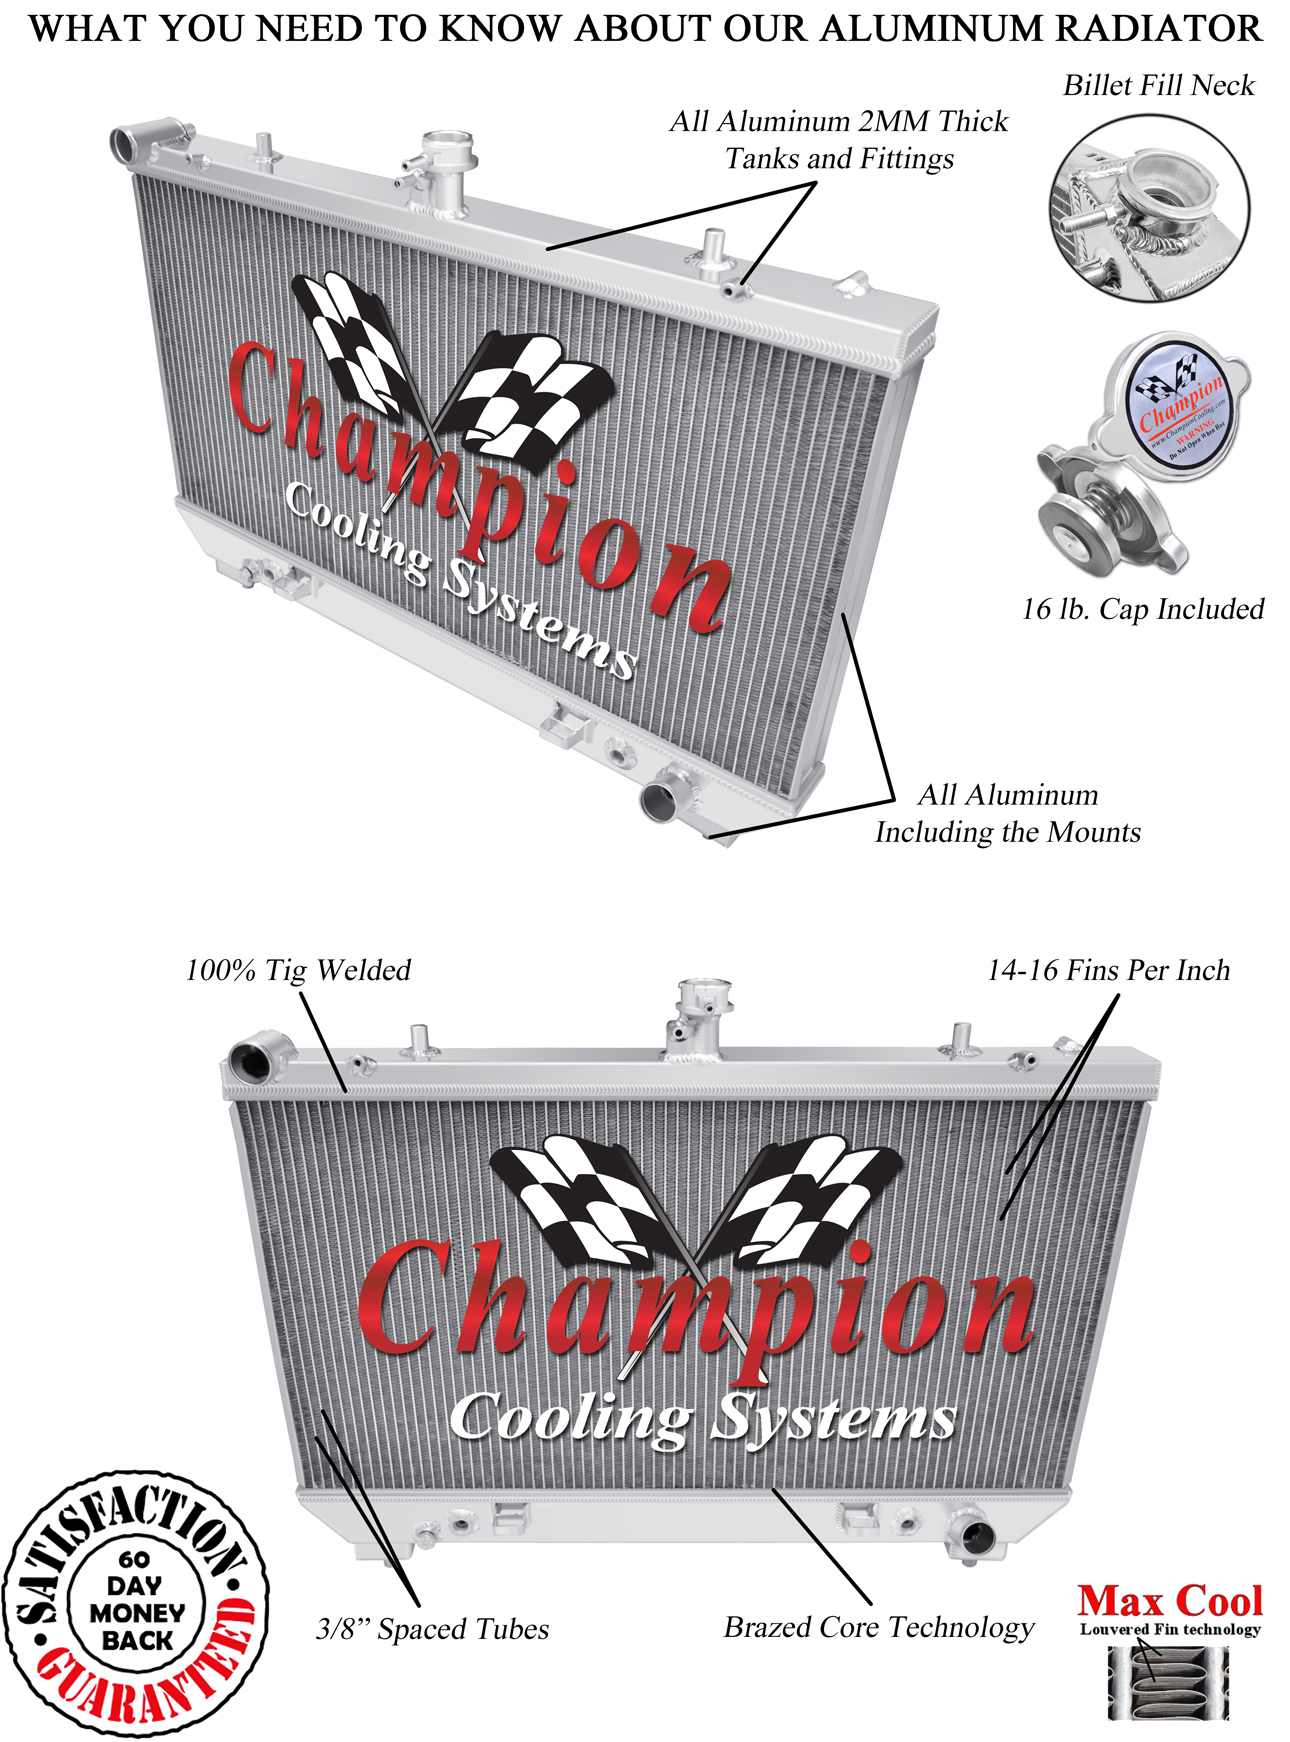 https://www.championcooling.com/photos/Photos%20White/Without%20Fans/13142/13142_d_w.jpg